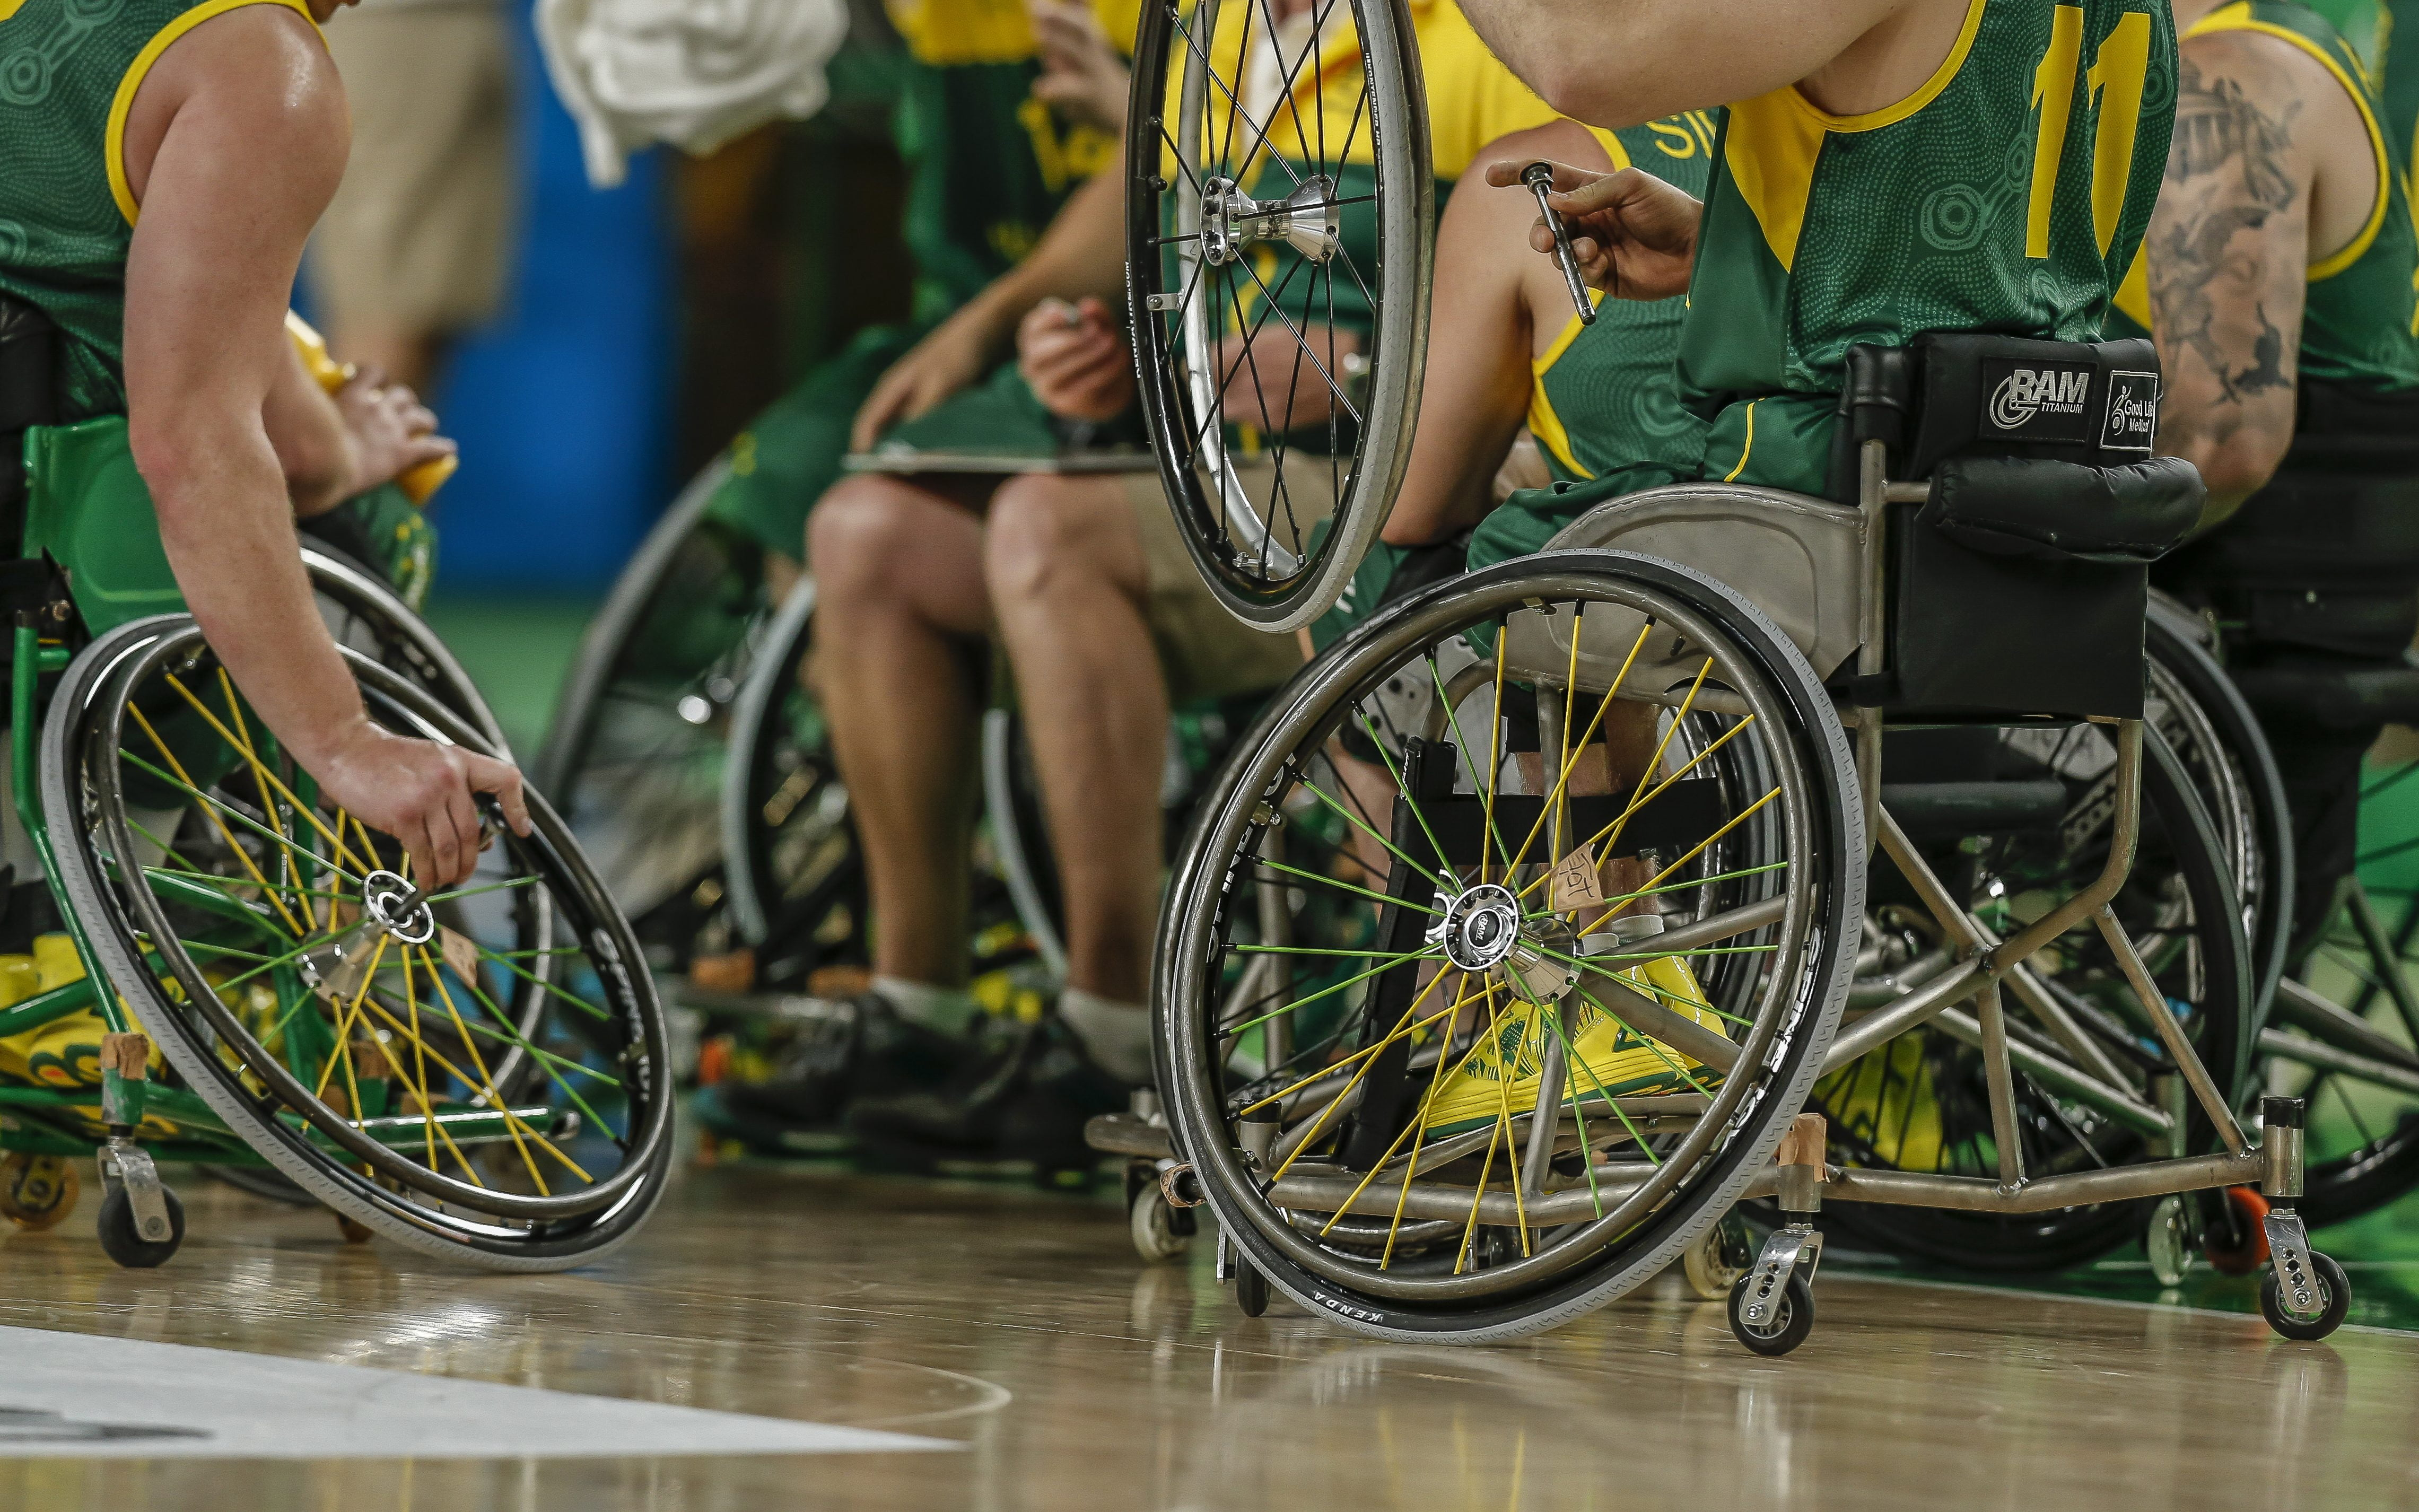 New portal aims to protect integrity of Para-sport